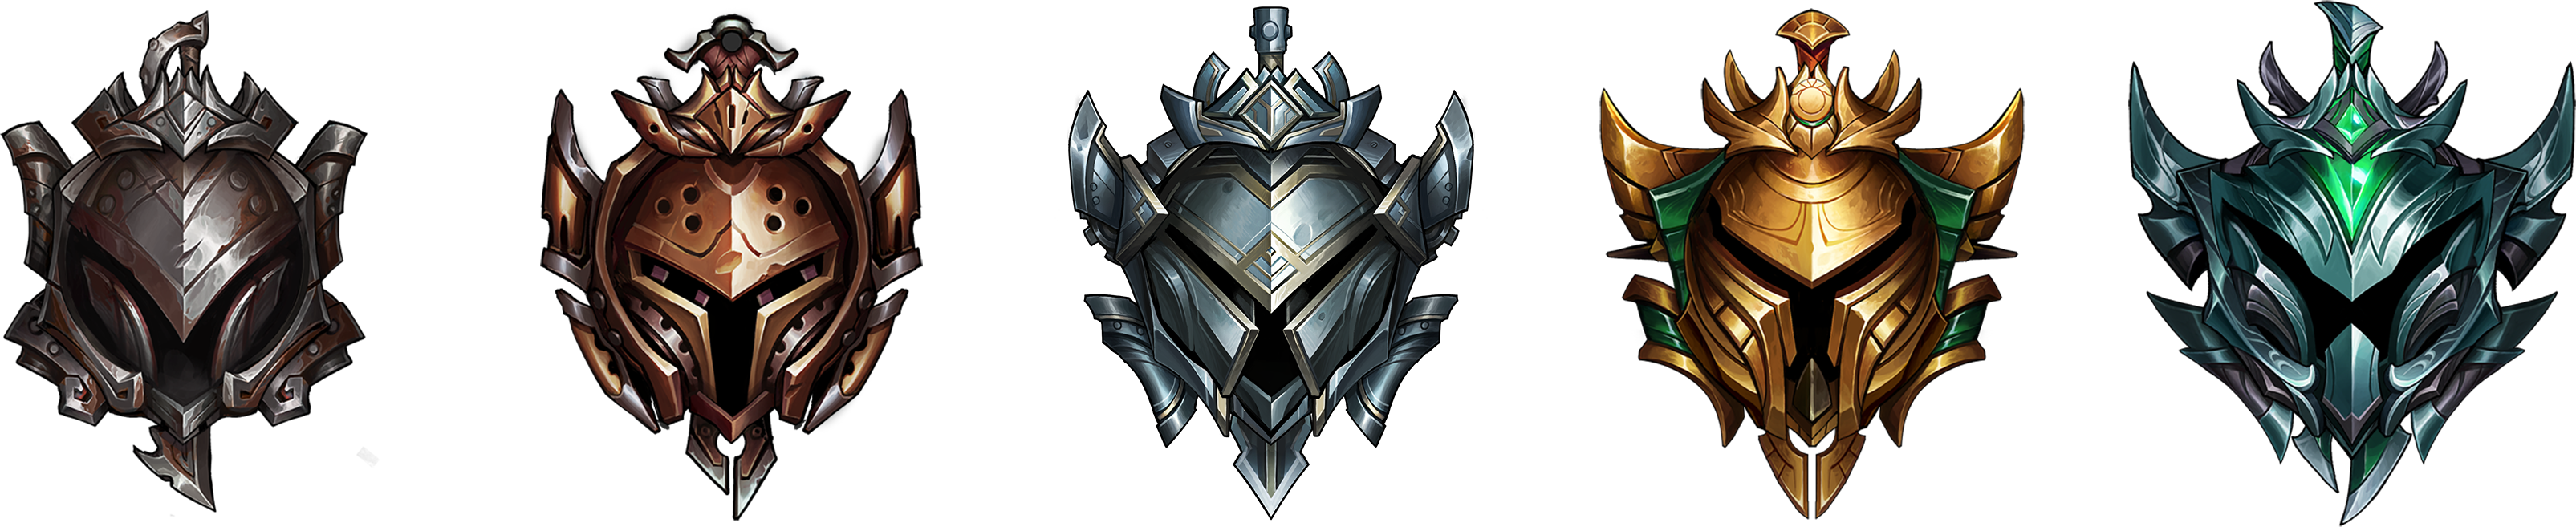 iron-bronze-silver-gold-plat.png